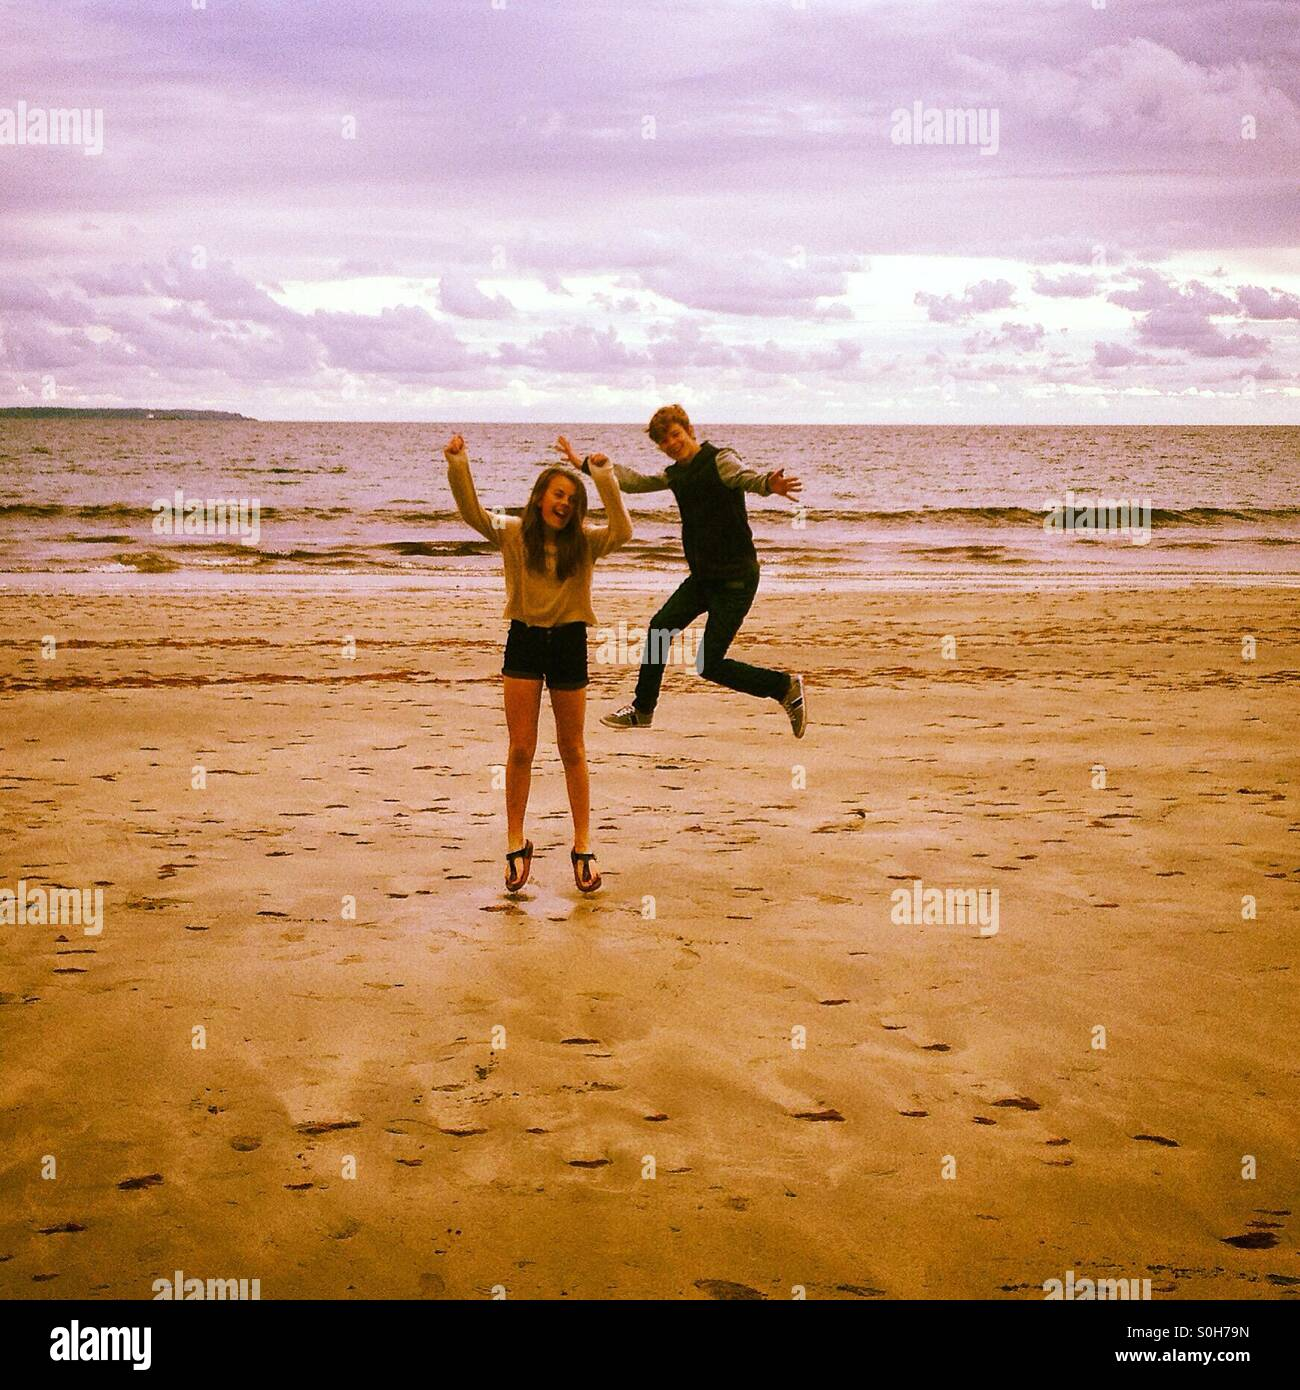 Boy and girl leaping on beach Stock Photo